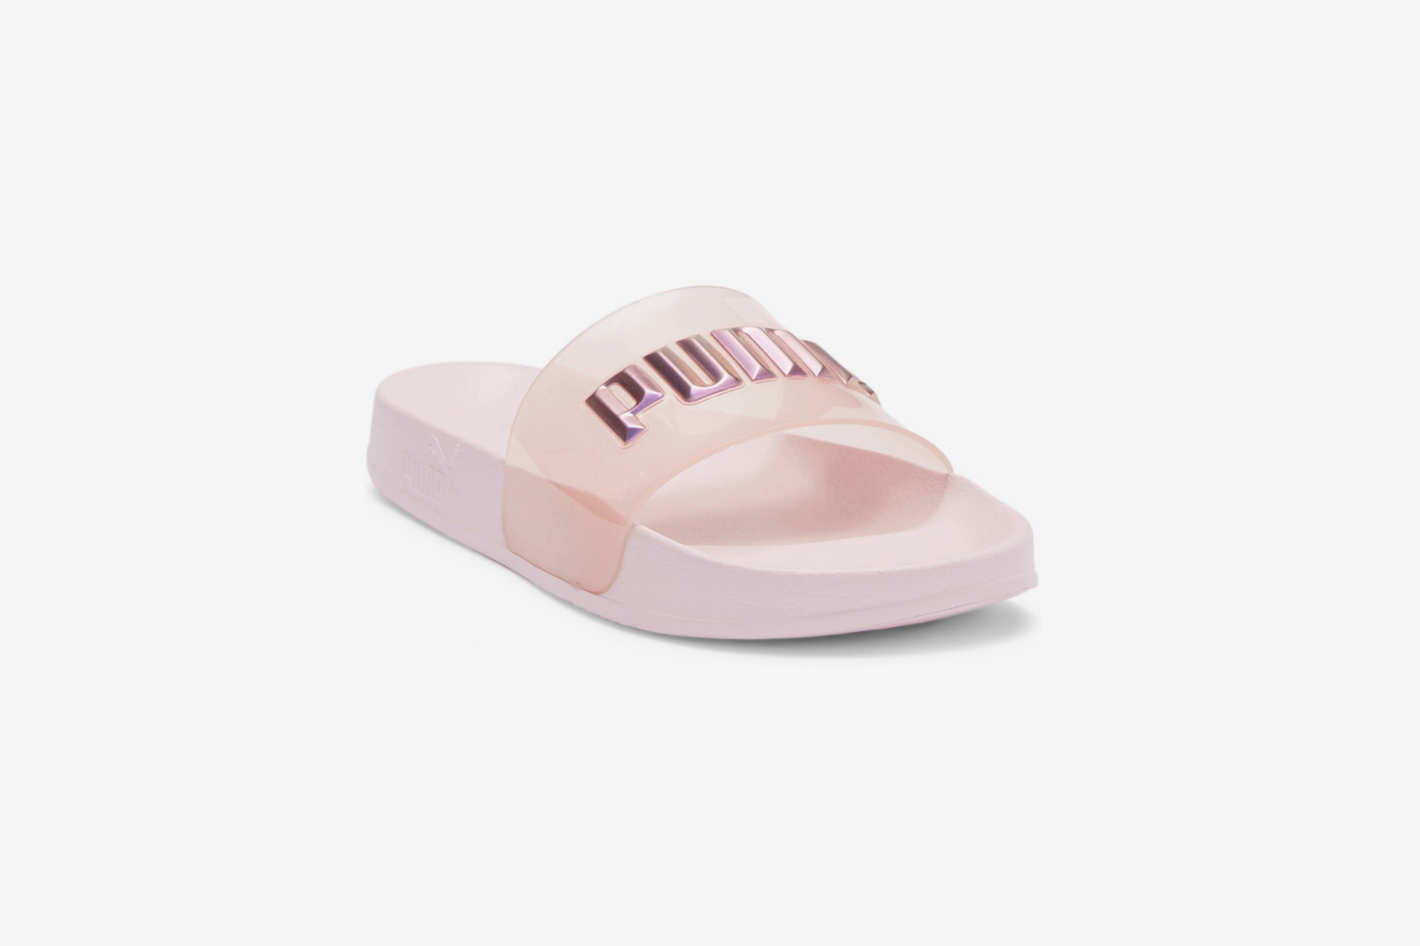 Puma Leadcat Sophia Webster Glitter Princess Slide